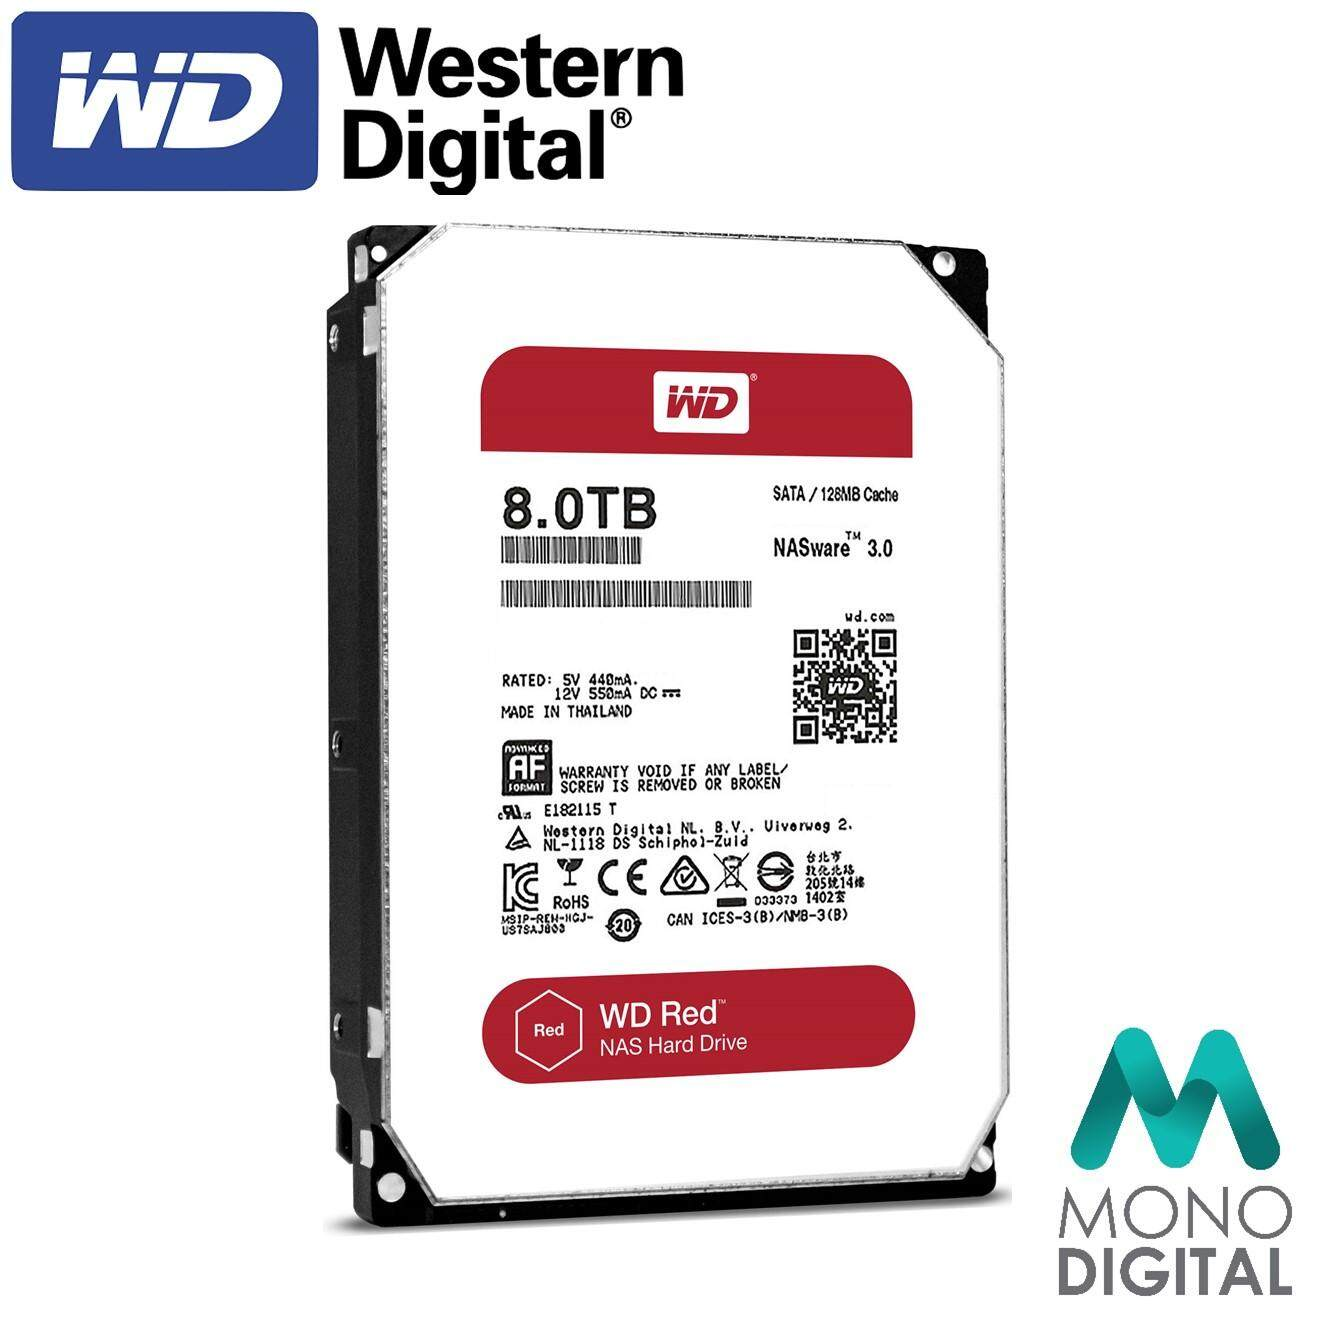 Wd External Hard Disk With Best Online Price In Malaysia My Passport Hdd Portable 4tb 3 Years Warranty Usb 30 New Original Eksternal Western Digital Red 8tb Network Attached Storage Nas 128mb Sata Iii Drive